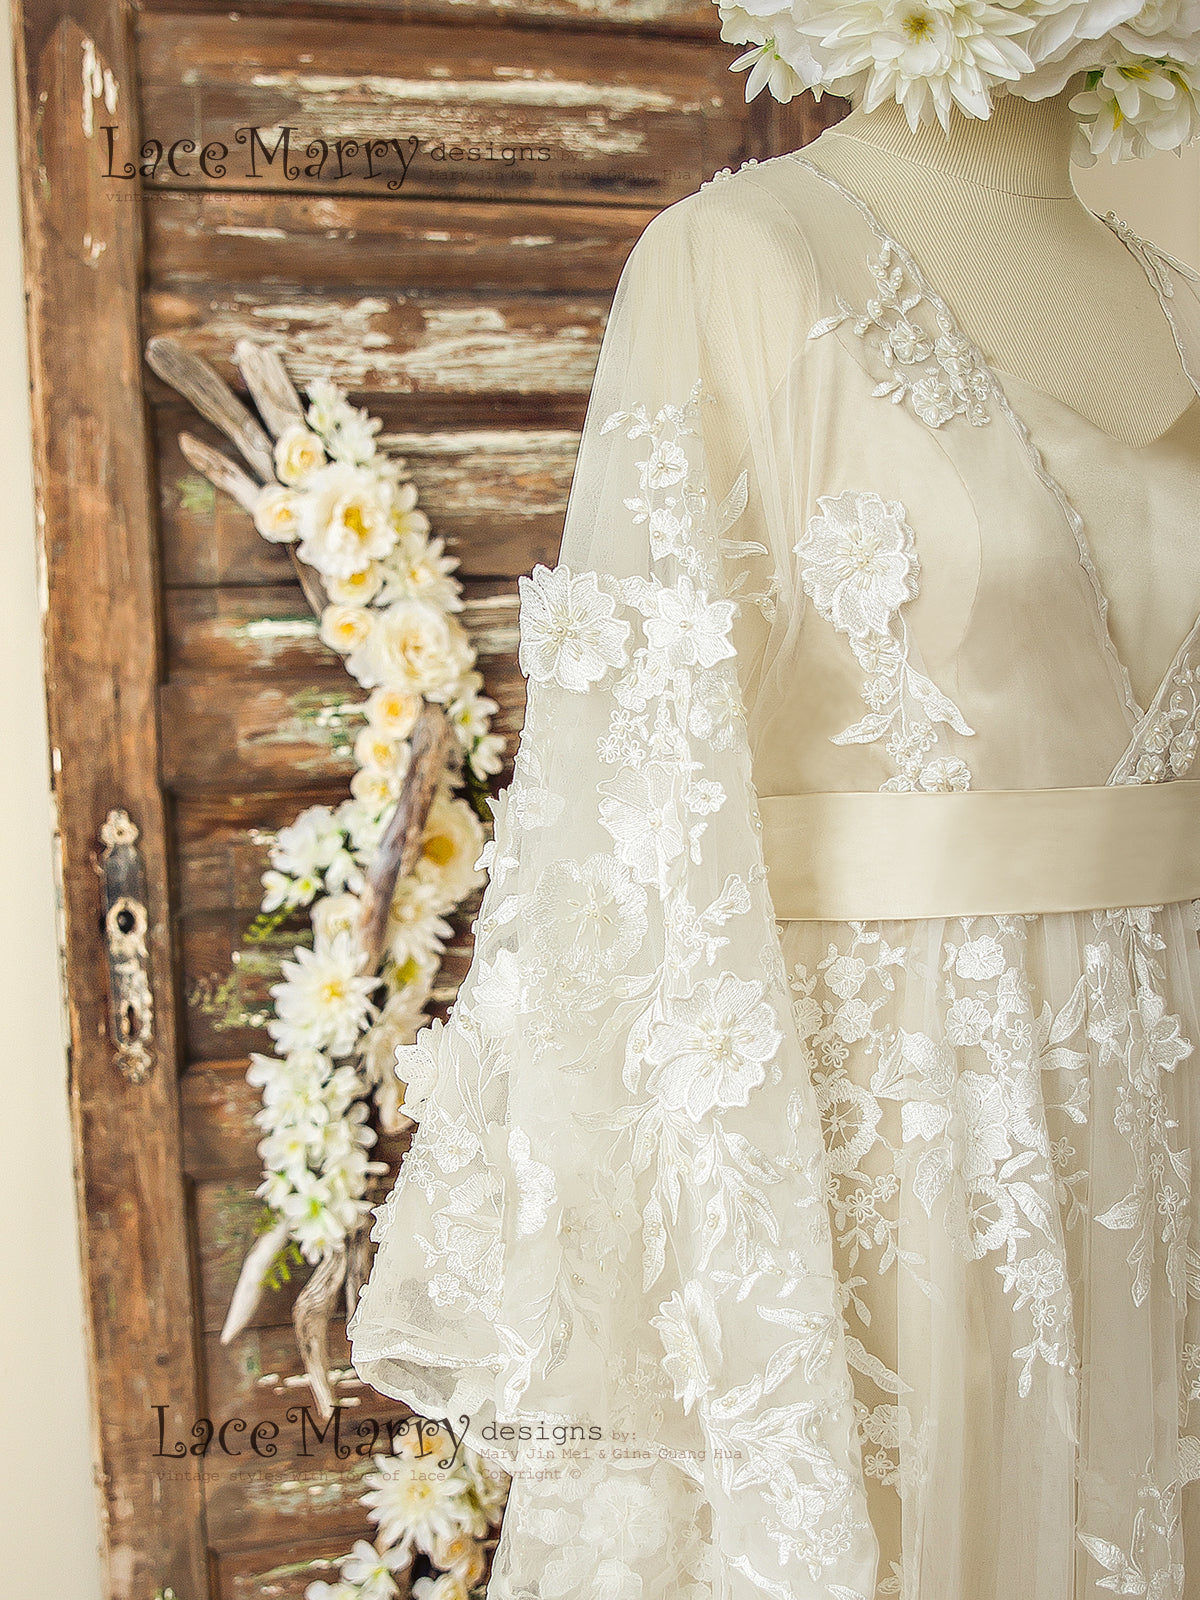 c4abab19f22 Bohemian Lace Wedding Dress with Ivory 3D Appliqué in Kaftan Style ...